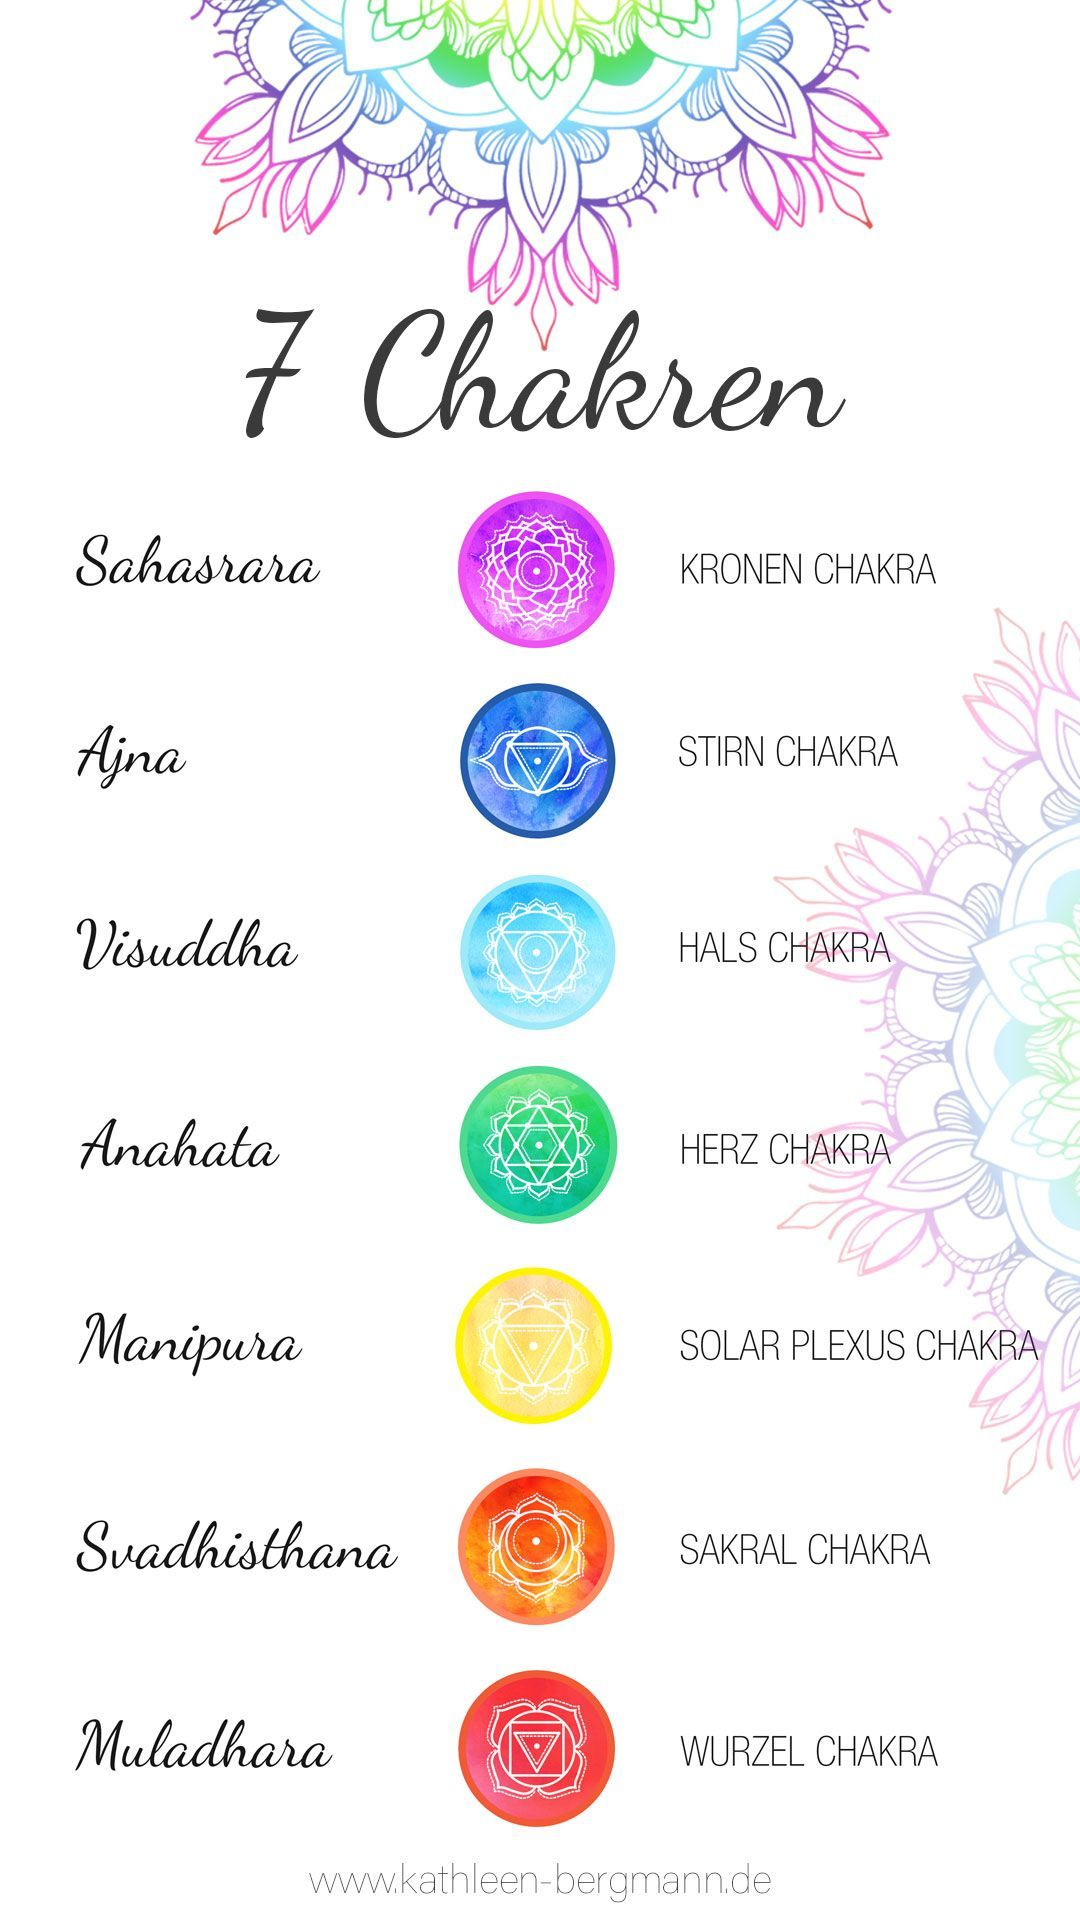 Significance of the 7 chakras - introduction to energy work -  Everything you should know about the 7 chakras and their meaning and how you can work with the chak - #asana #chakras #energy #Exercise #introduction #Meditation #namaste #significance #VinyasaYoga #work #YinYoga #YogaFitness #YogaFlow #Yogagirls #YogaLifestyle #Yogaposes #YogaSequences